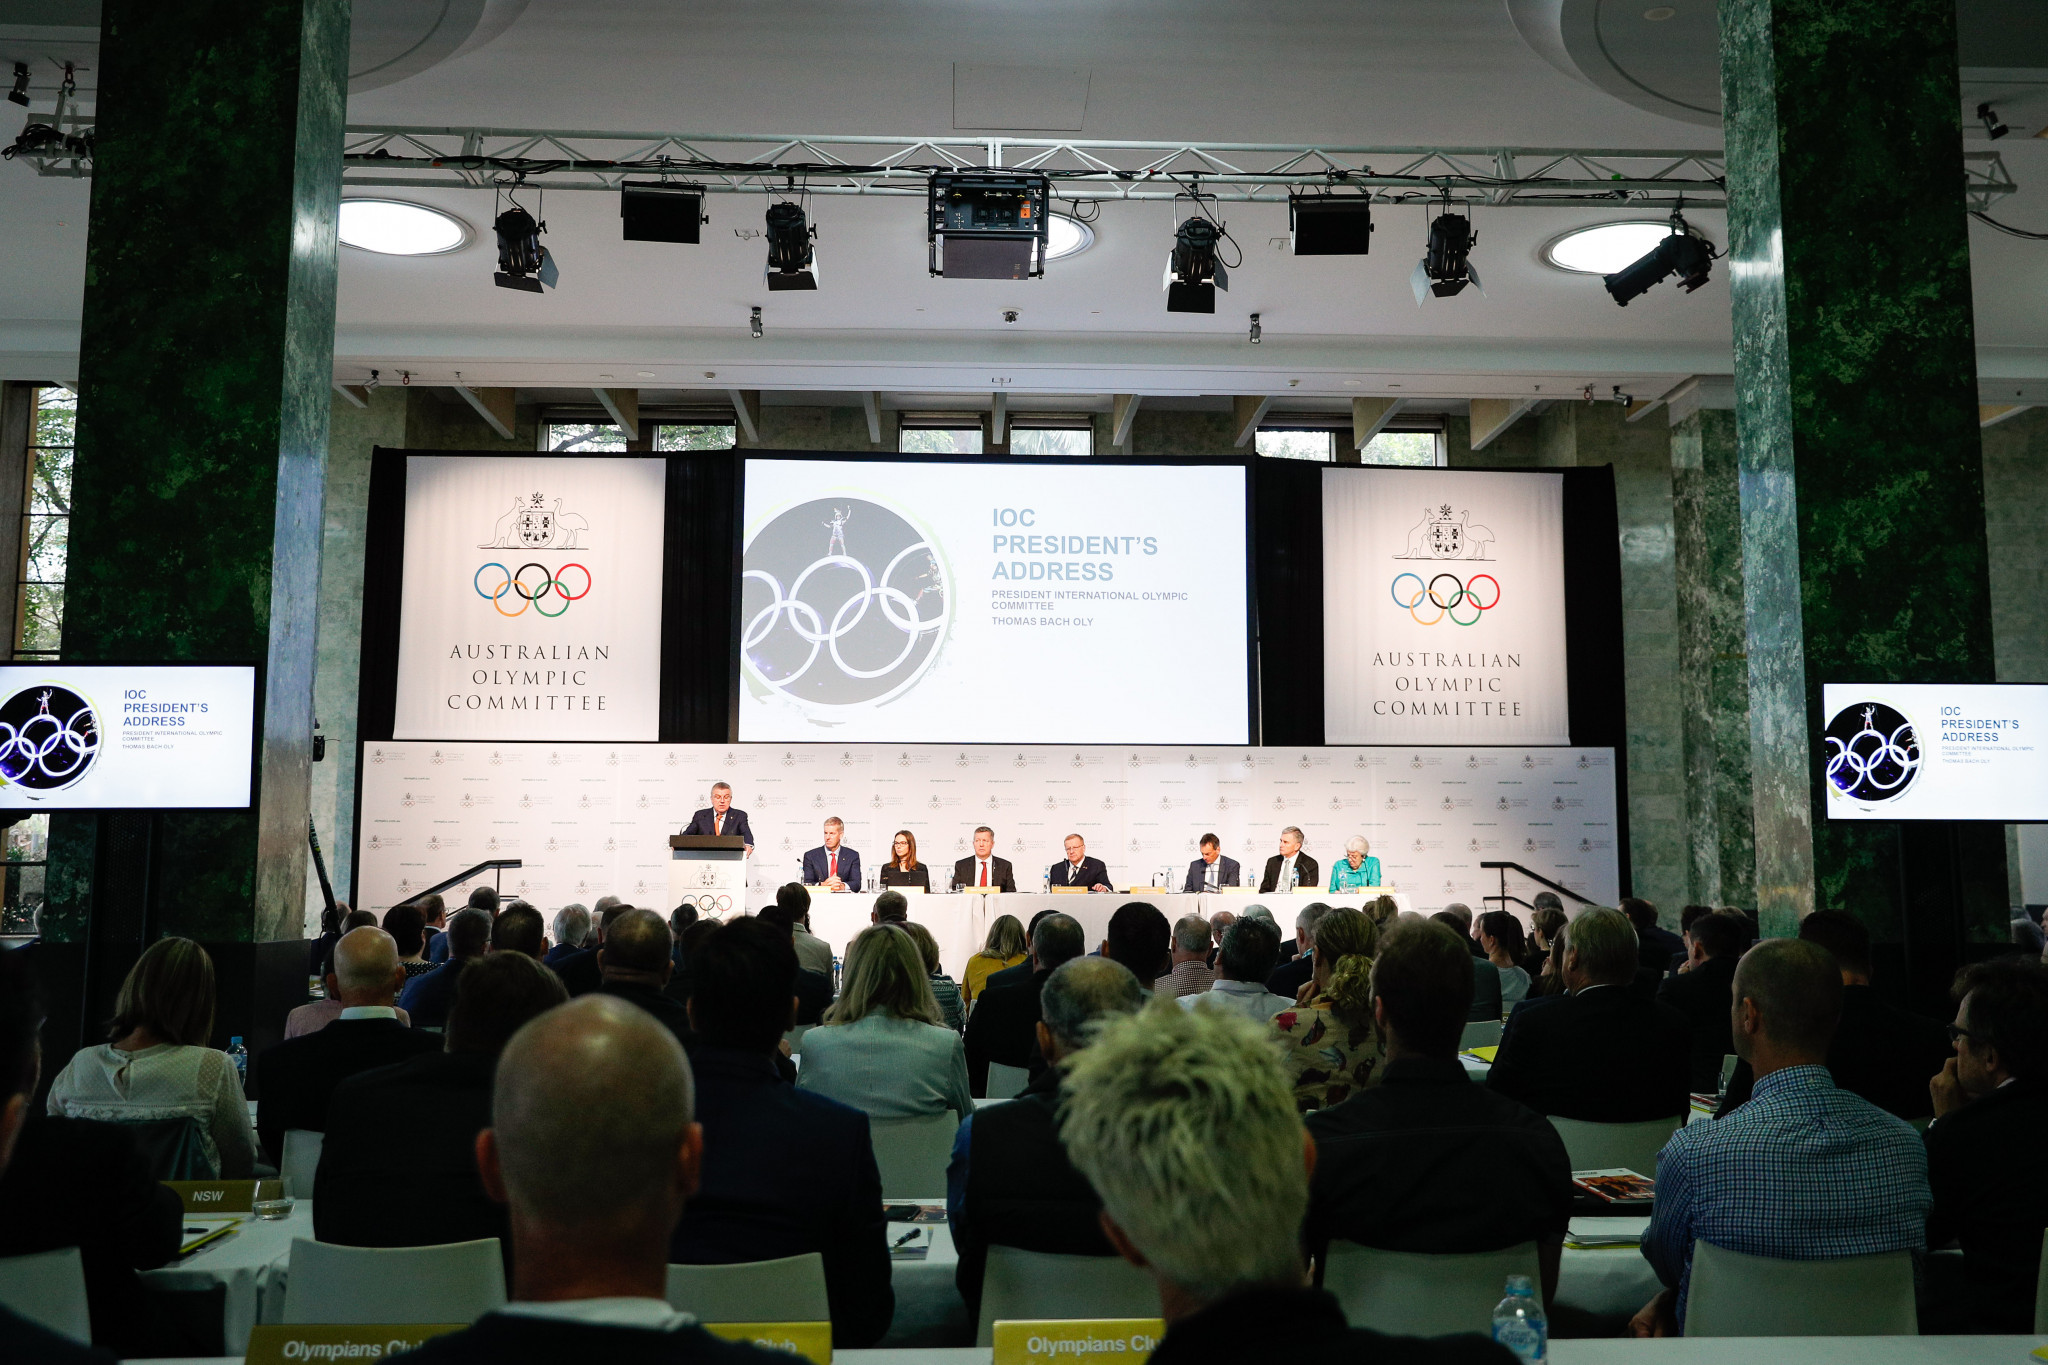 IOC President Thomas Bach told the audience at the Australian Olympic Committee Annual General Meeting he wanted to avoid a bid process where there were